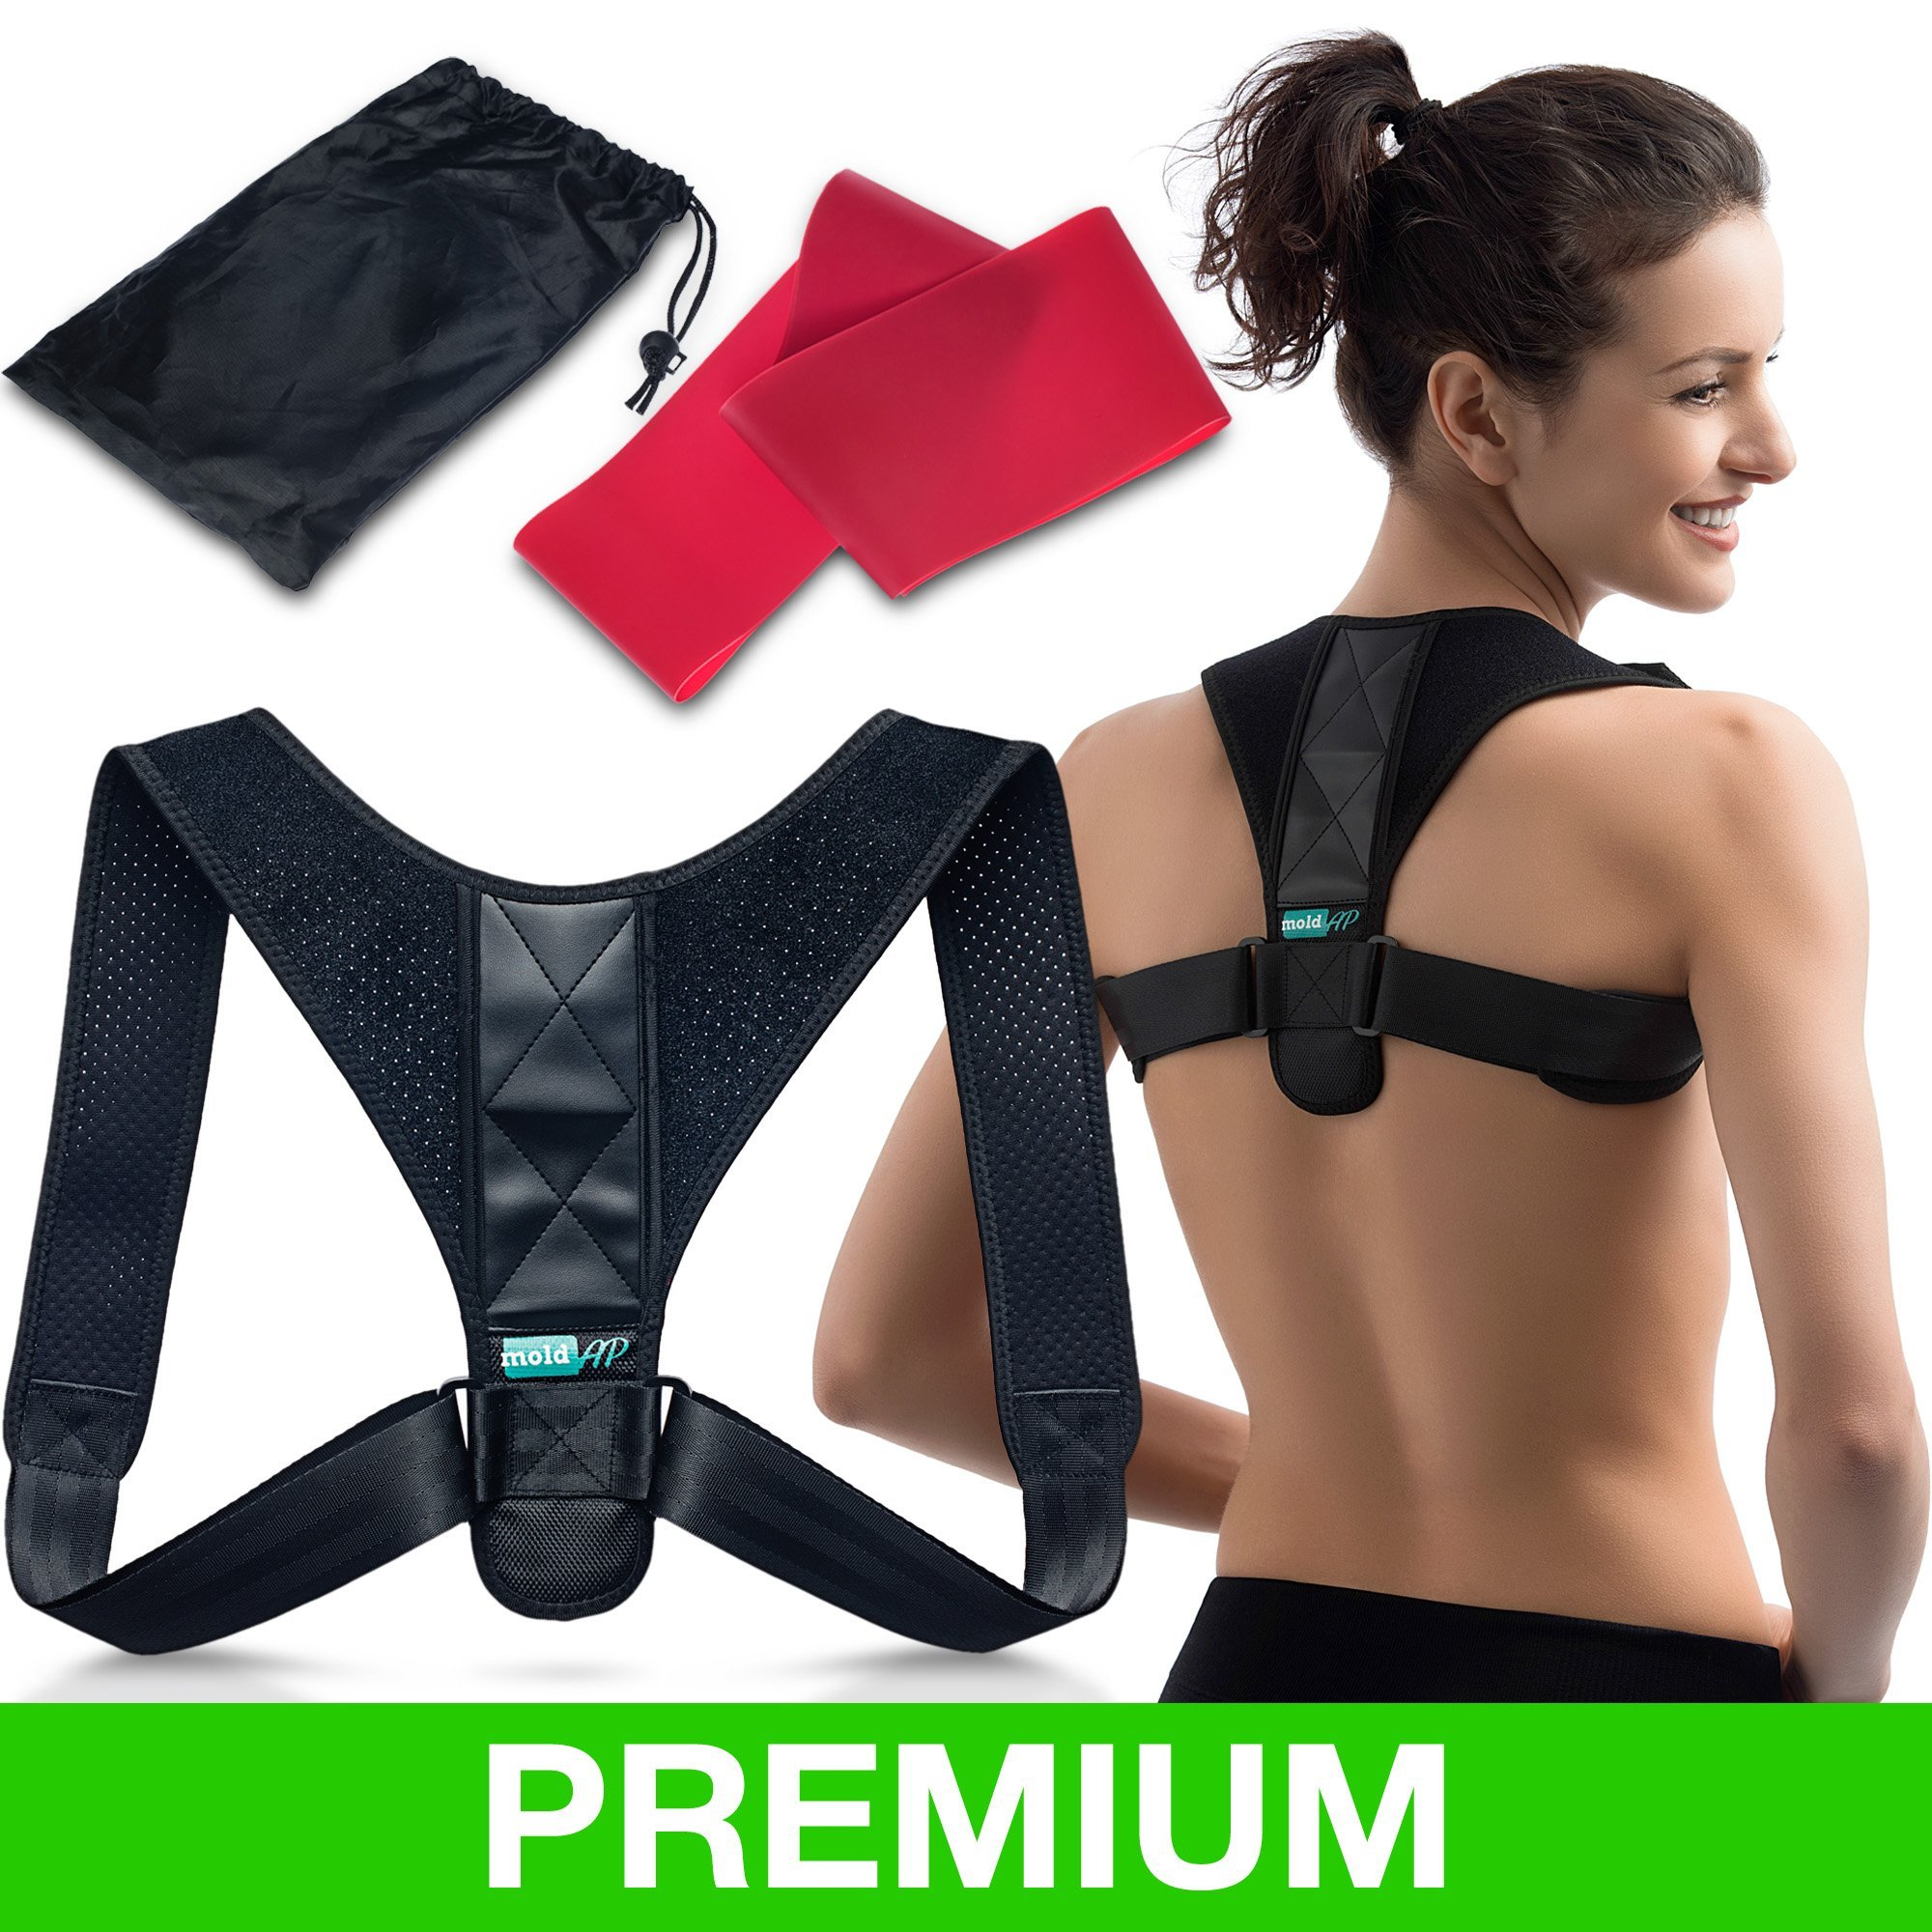 Orthopedic Posture Corrector for Women & Men | Adjustable Thoracic Back Brace for Perfect Posture | Comfortable Clavicle Support |FDA APPROVED| | Resistance Band & Bag INCLUDED by moldAP